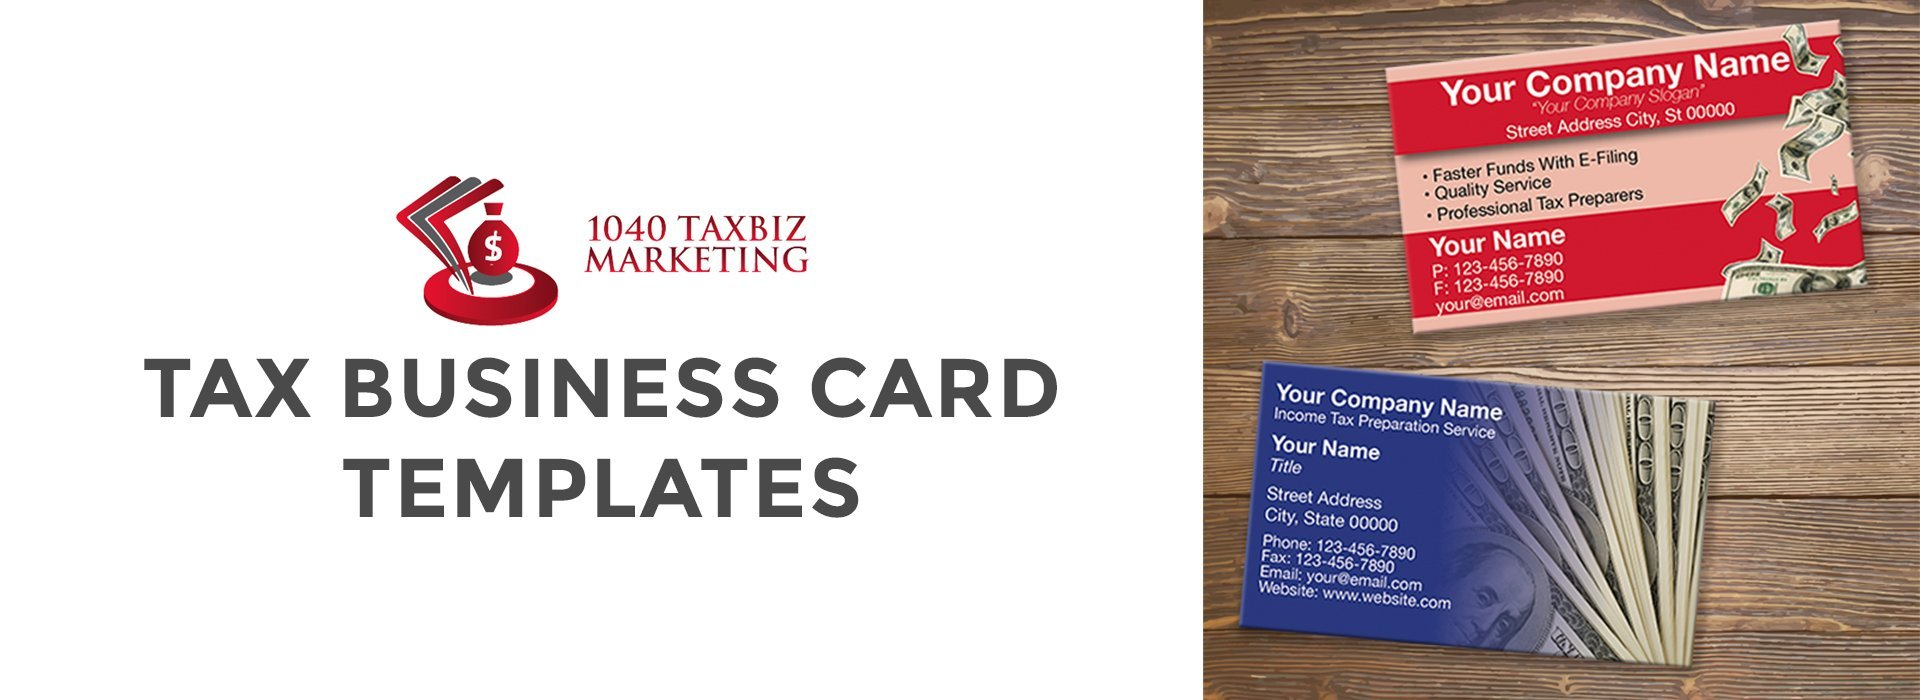 Business cards 1040 tax biz print please note all templates are updated every tax year and are customizable to your brand colourmoves